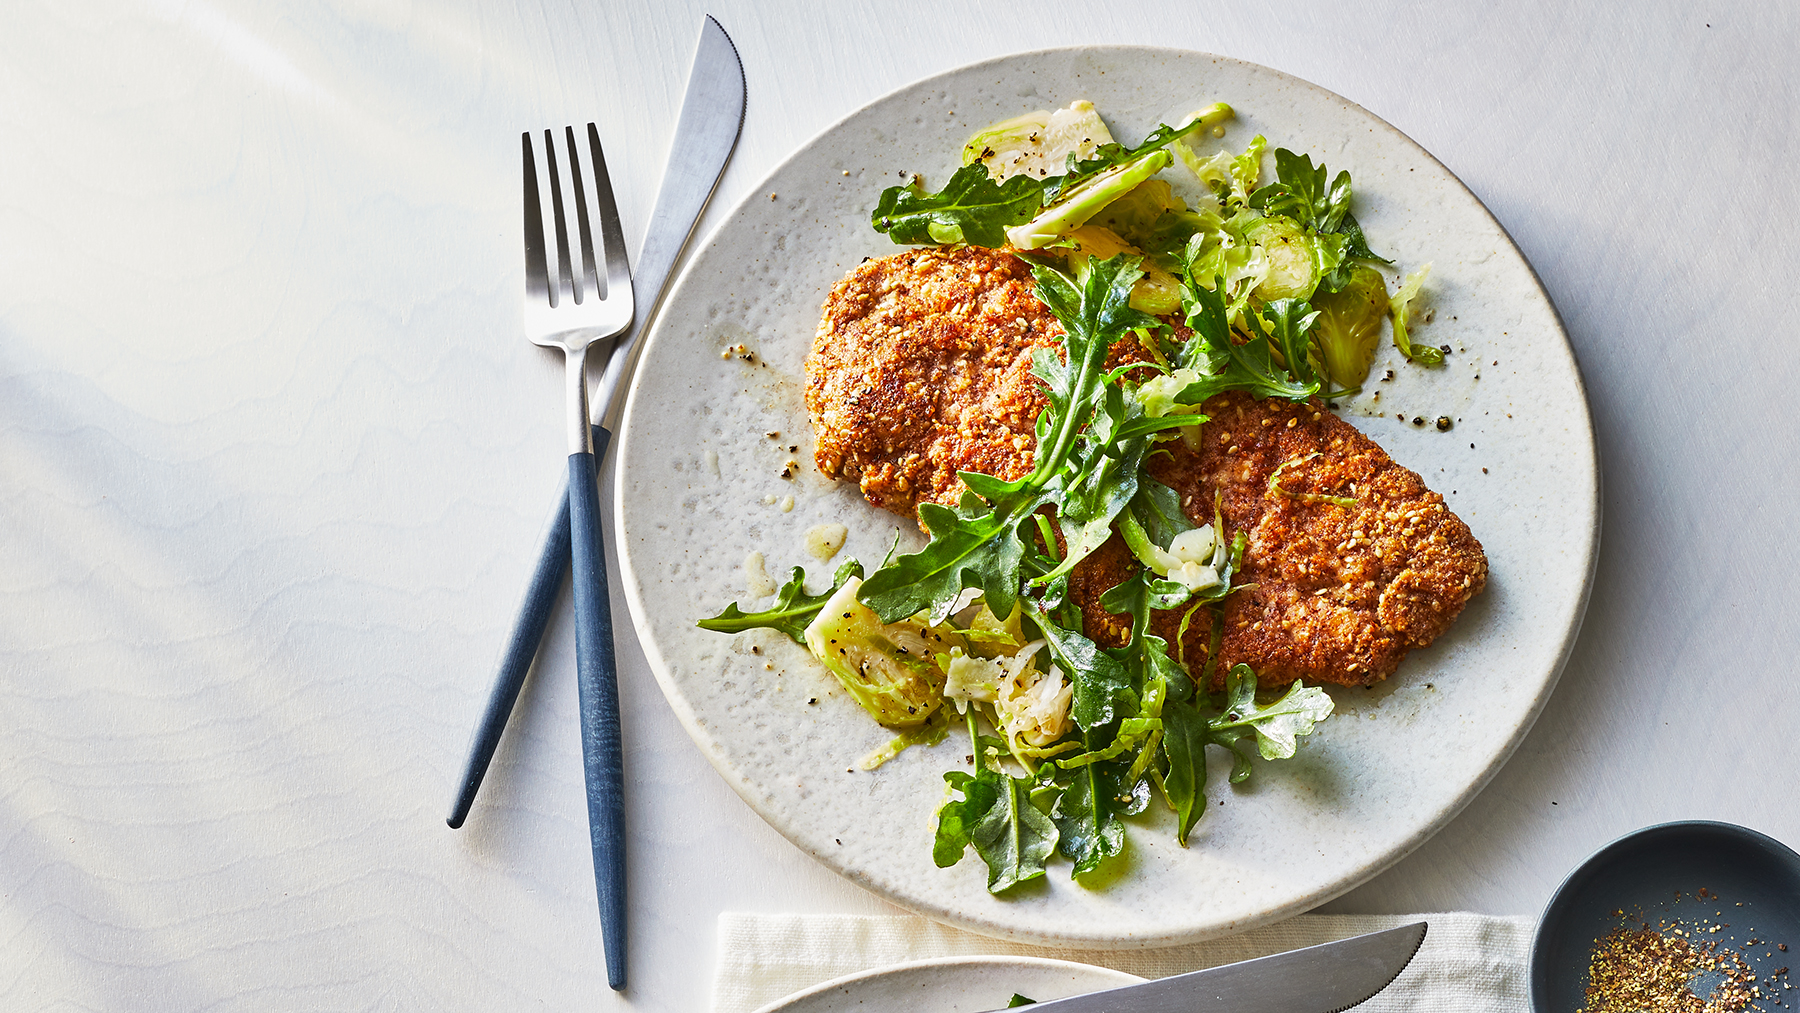 Almond-Crusted Chicken With Arugula Salad Recipe